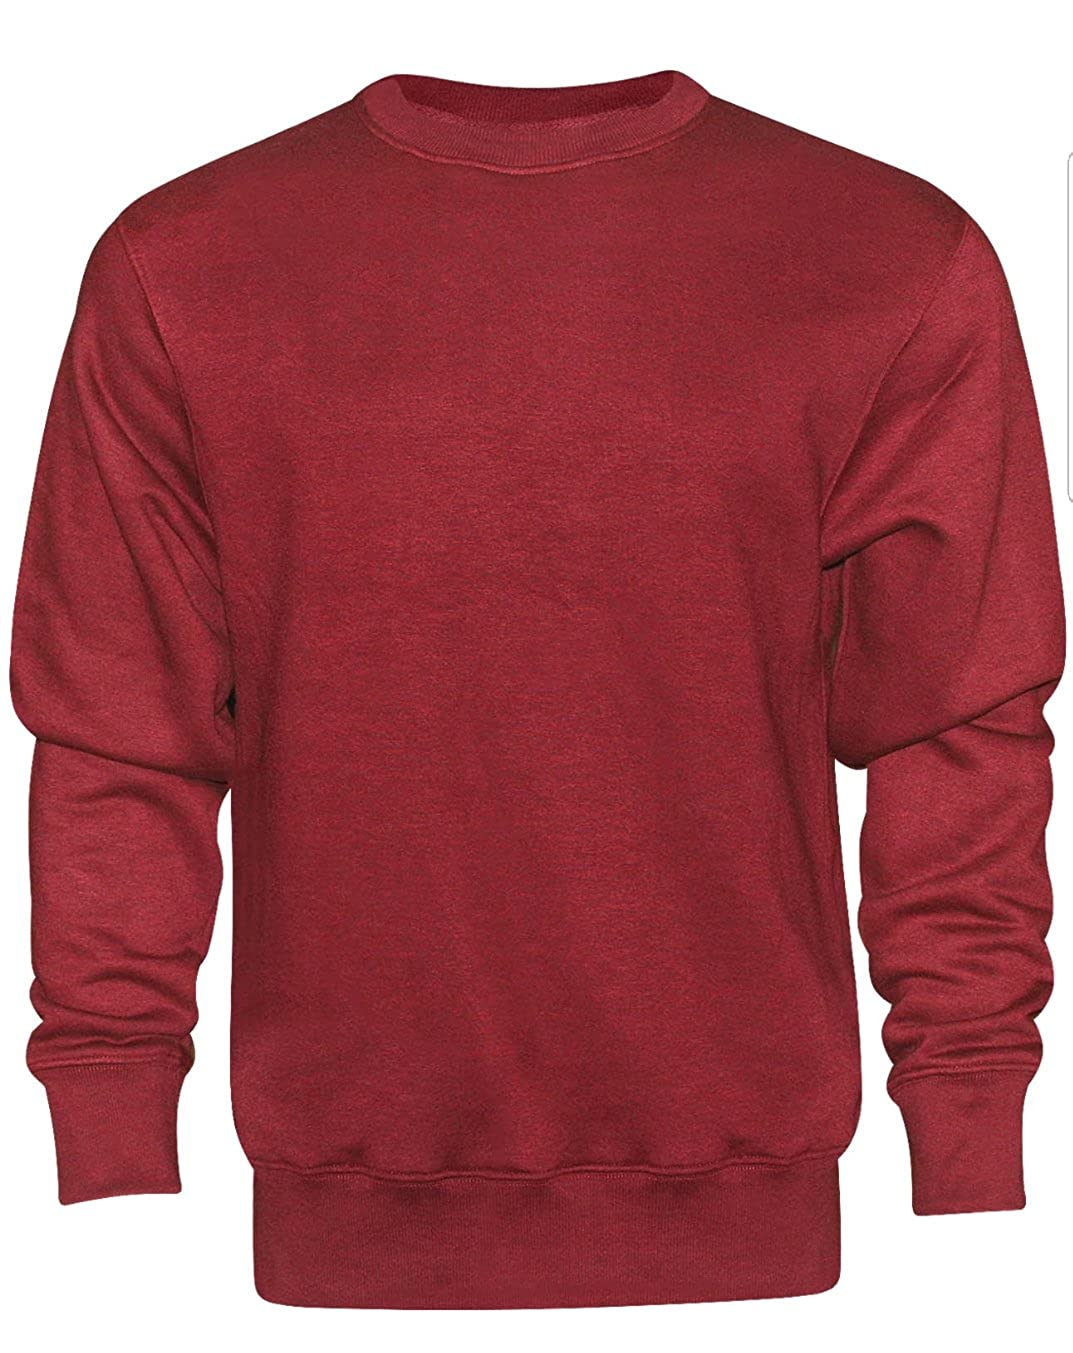 16Sixty New Mens Plain Crew Neck Sweater Sweatshirt Jumper Top S M XL Plus Sizes